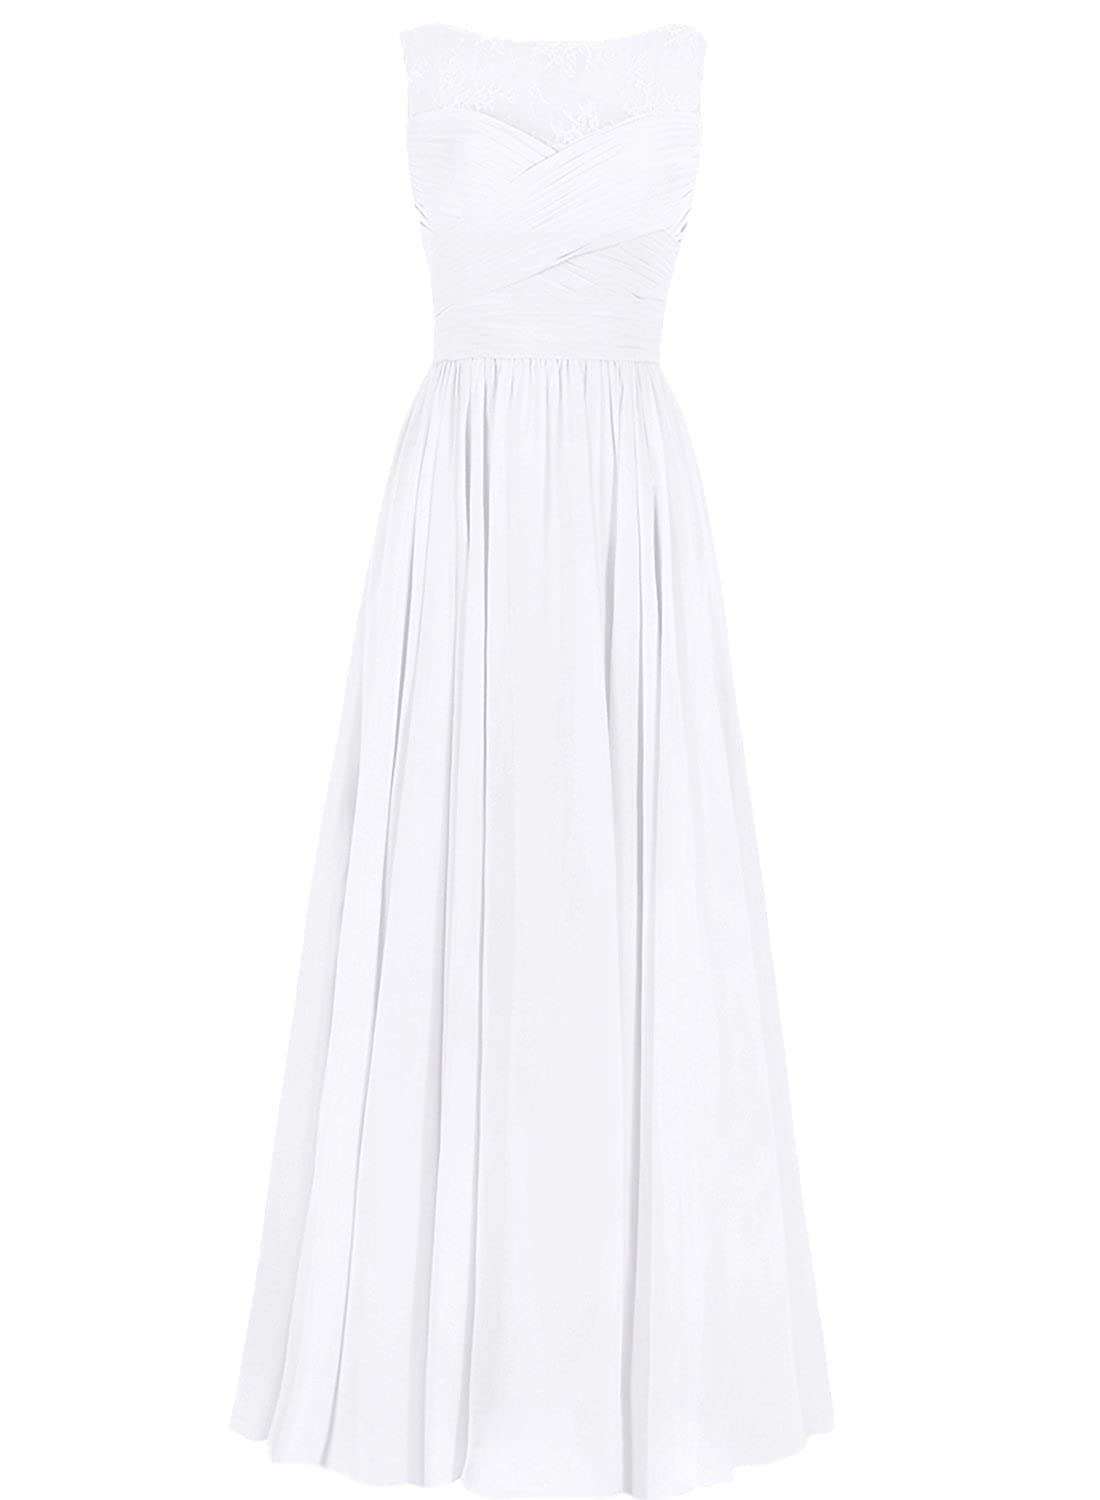 JAEDEN Lace Evening Dresses Long Prom Party Gown Chiffon Bridesmaid Dress White UK18: Amazon.co.uk: Clothing